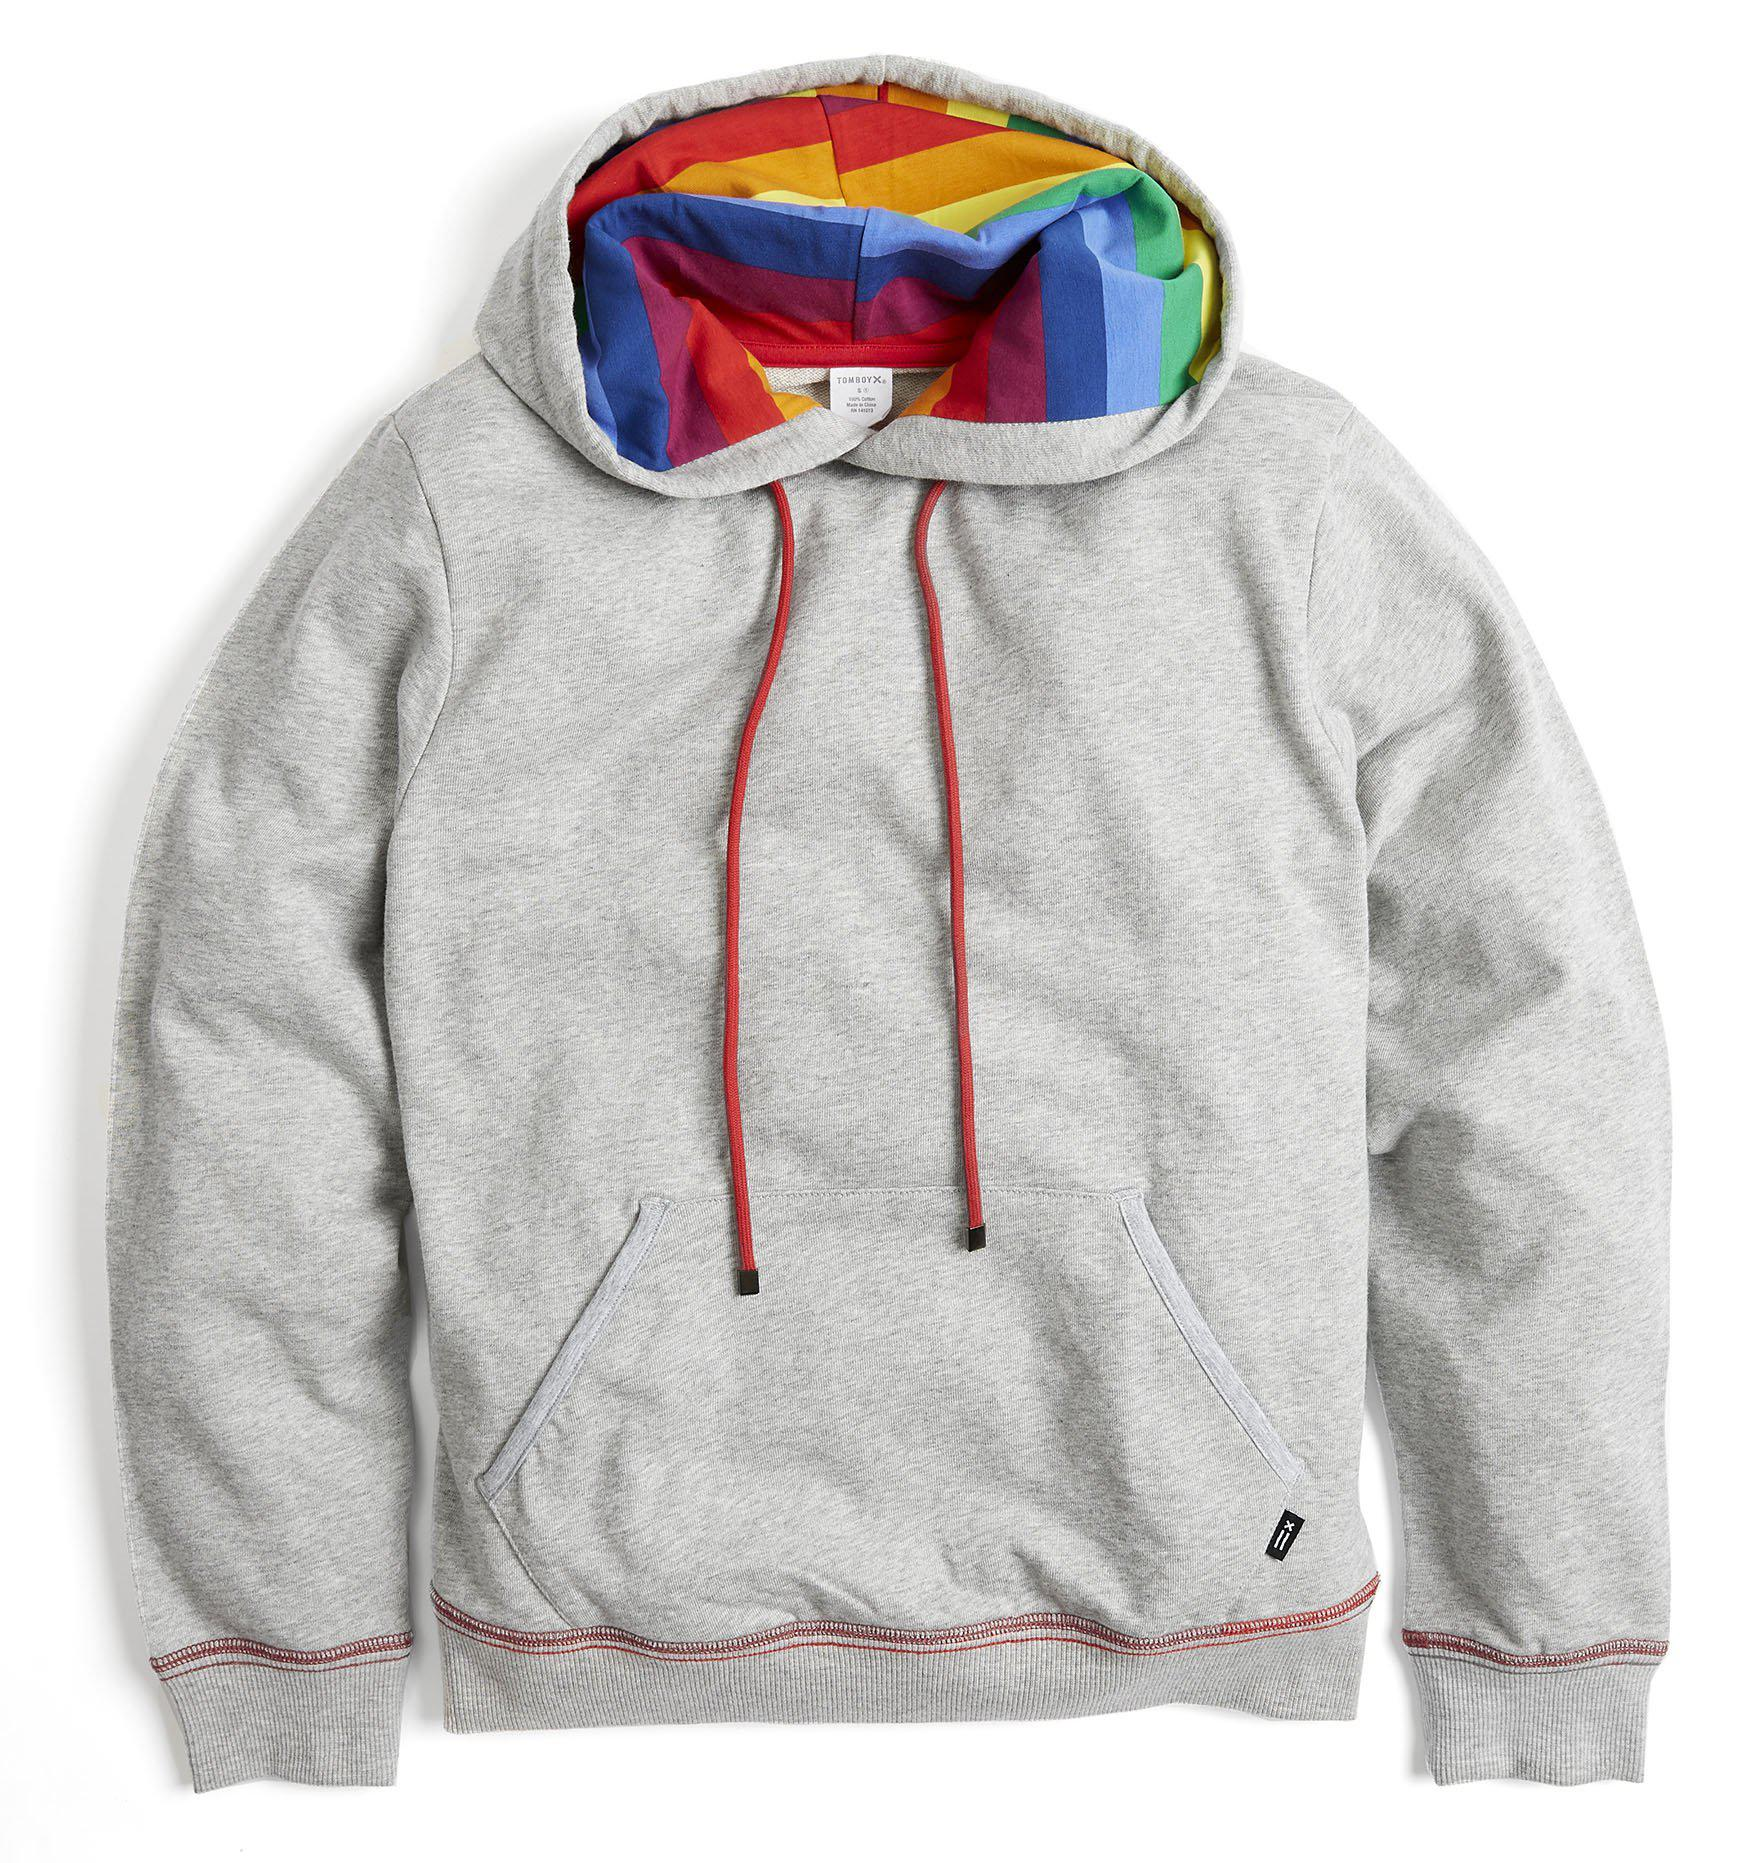 new style 2d75d 8b09f French Terry Pullover Hoodie - Heather Grey with Rainbow Stripe